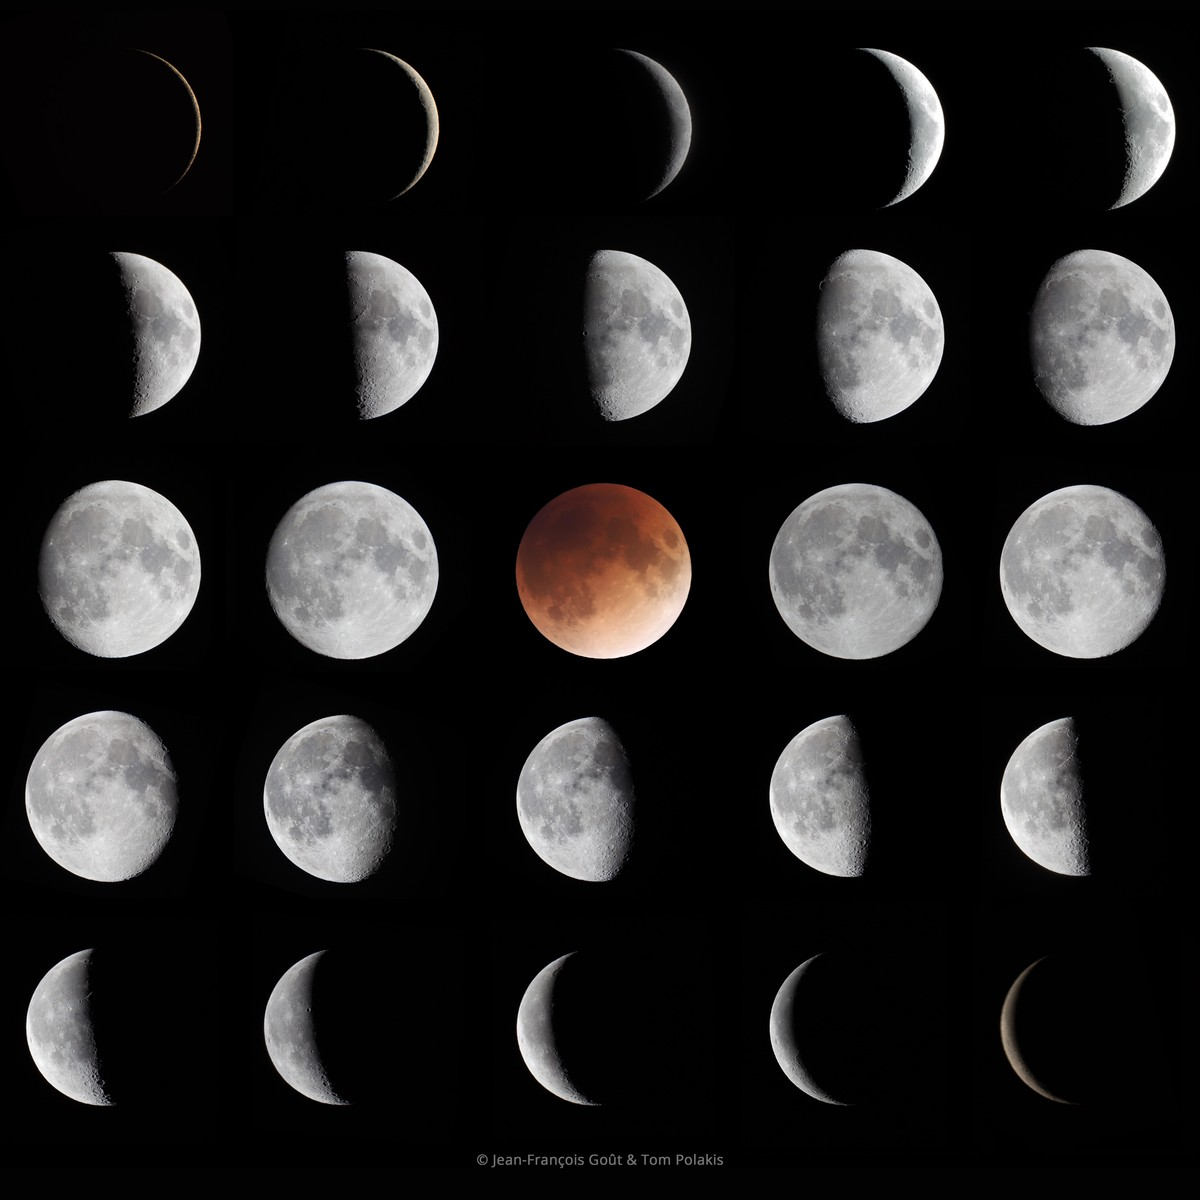 APOD: 2018 March 10 - Phases of the Moon